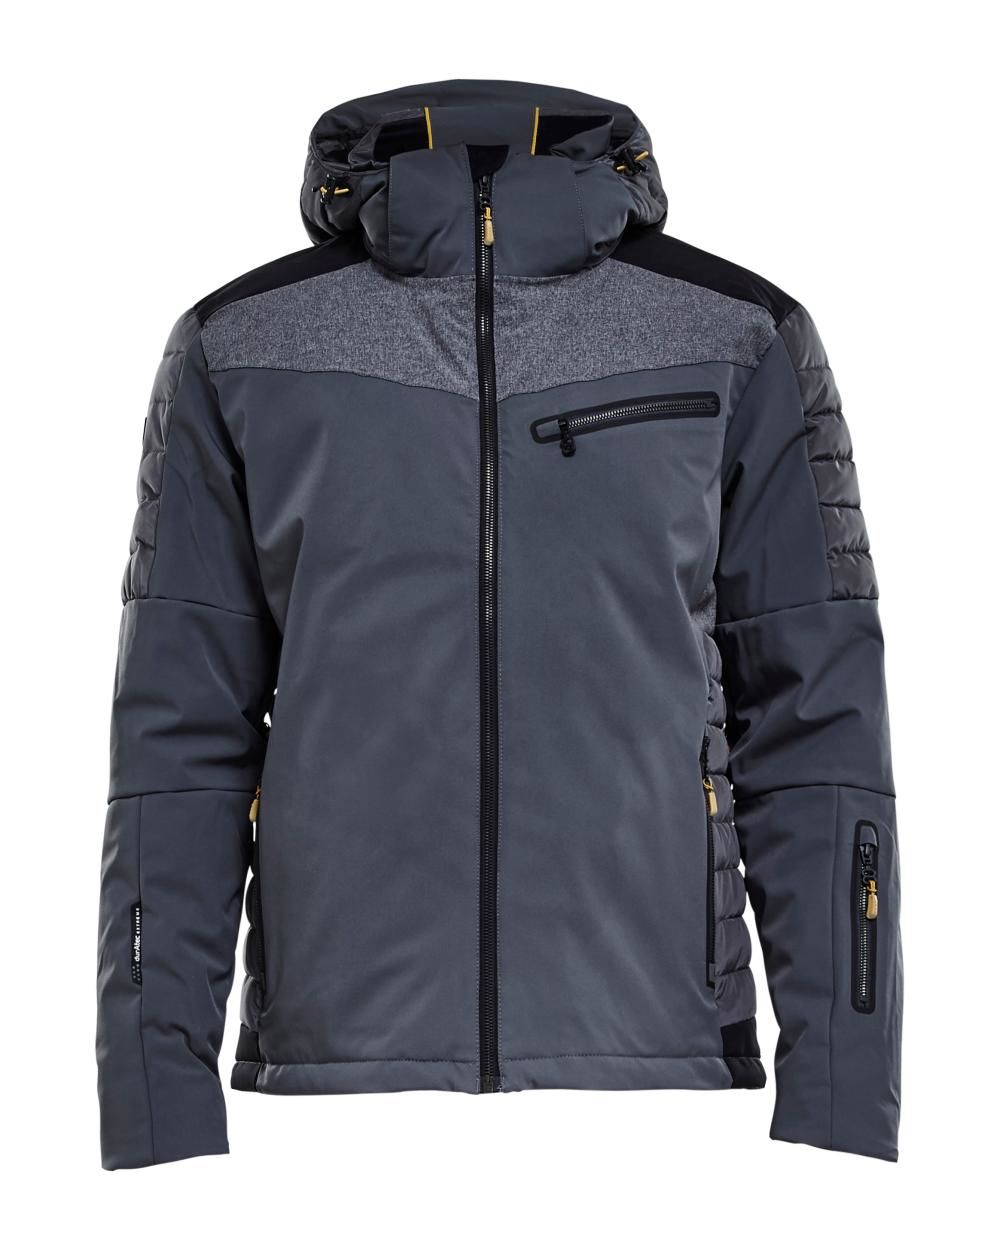 8848 Altitude Dimon Jacket M